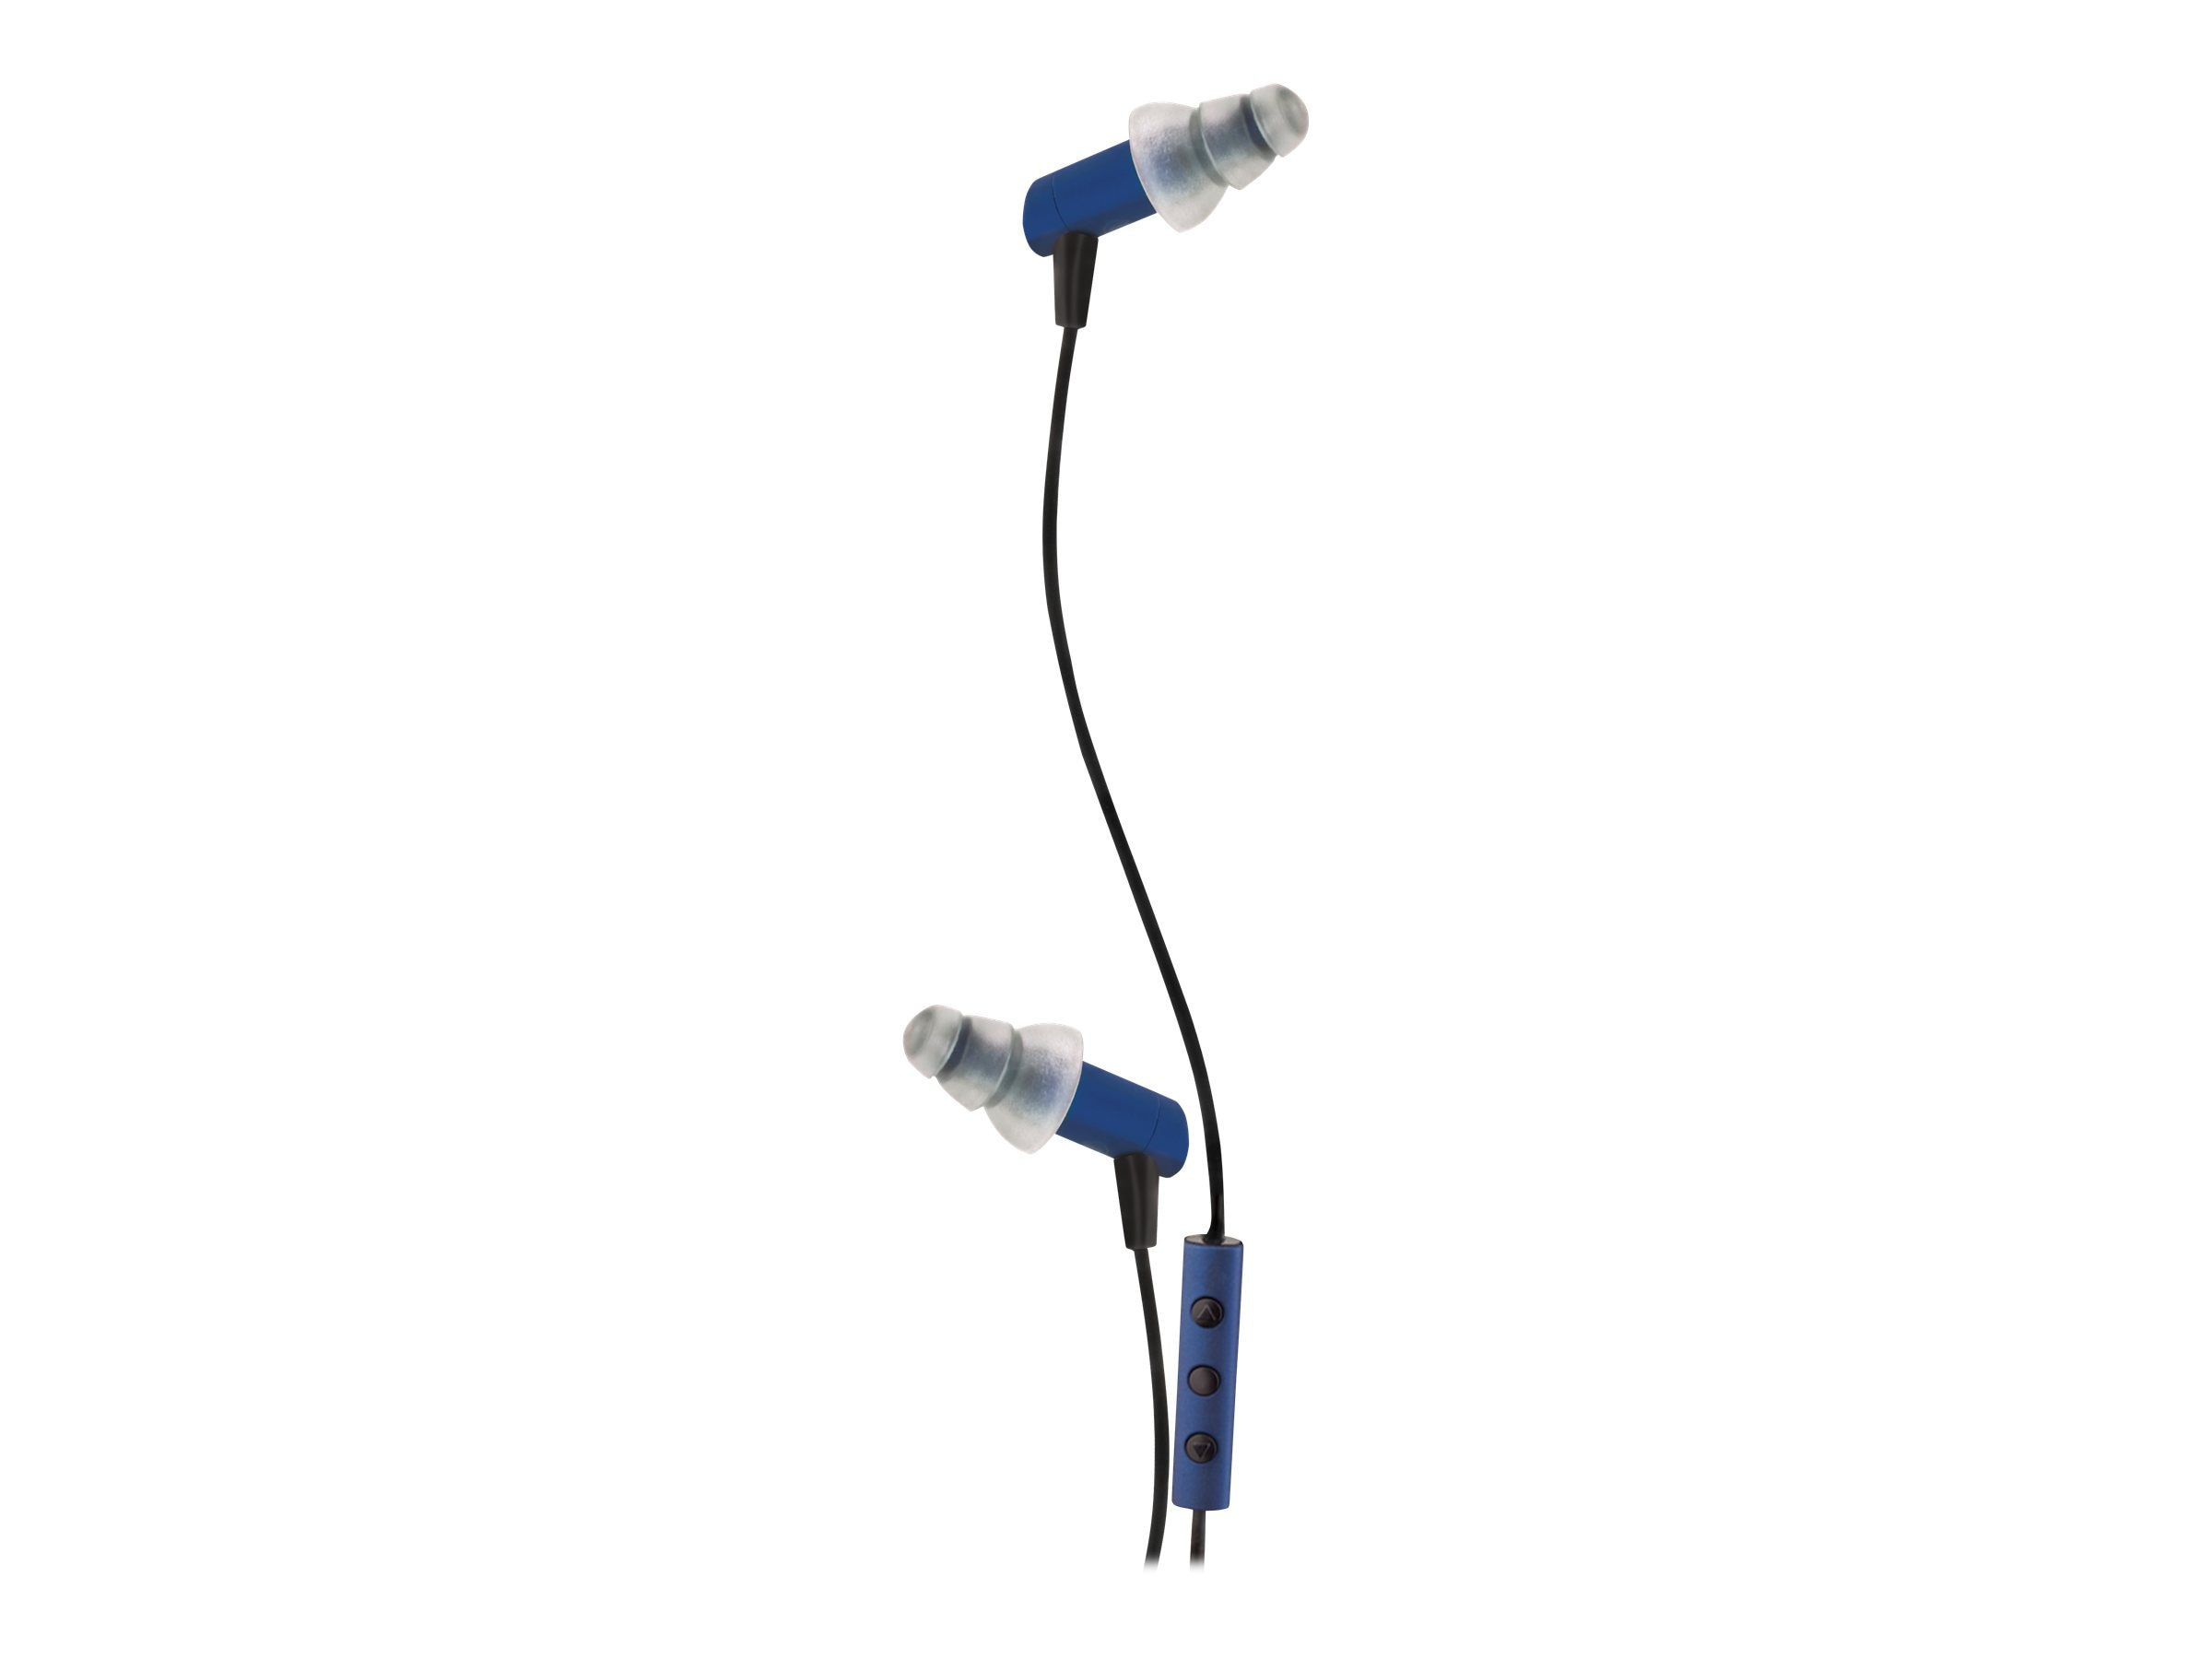 Etymotic Research hf3 Stereo Headset with iPhone iPod Controls, Cobalt, ER23-HF3-COBALT-I, 13846865, Headphones